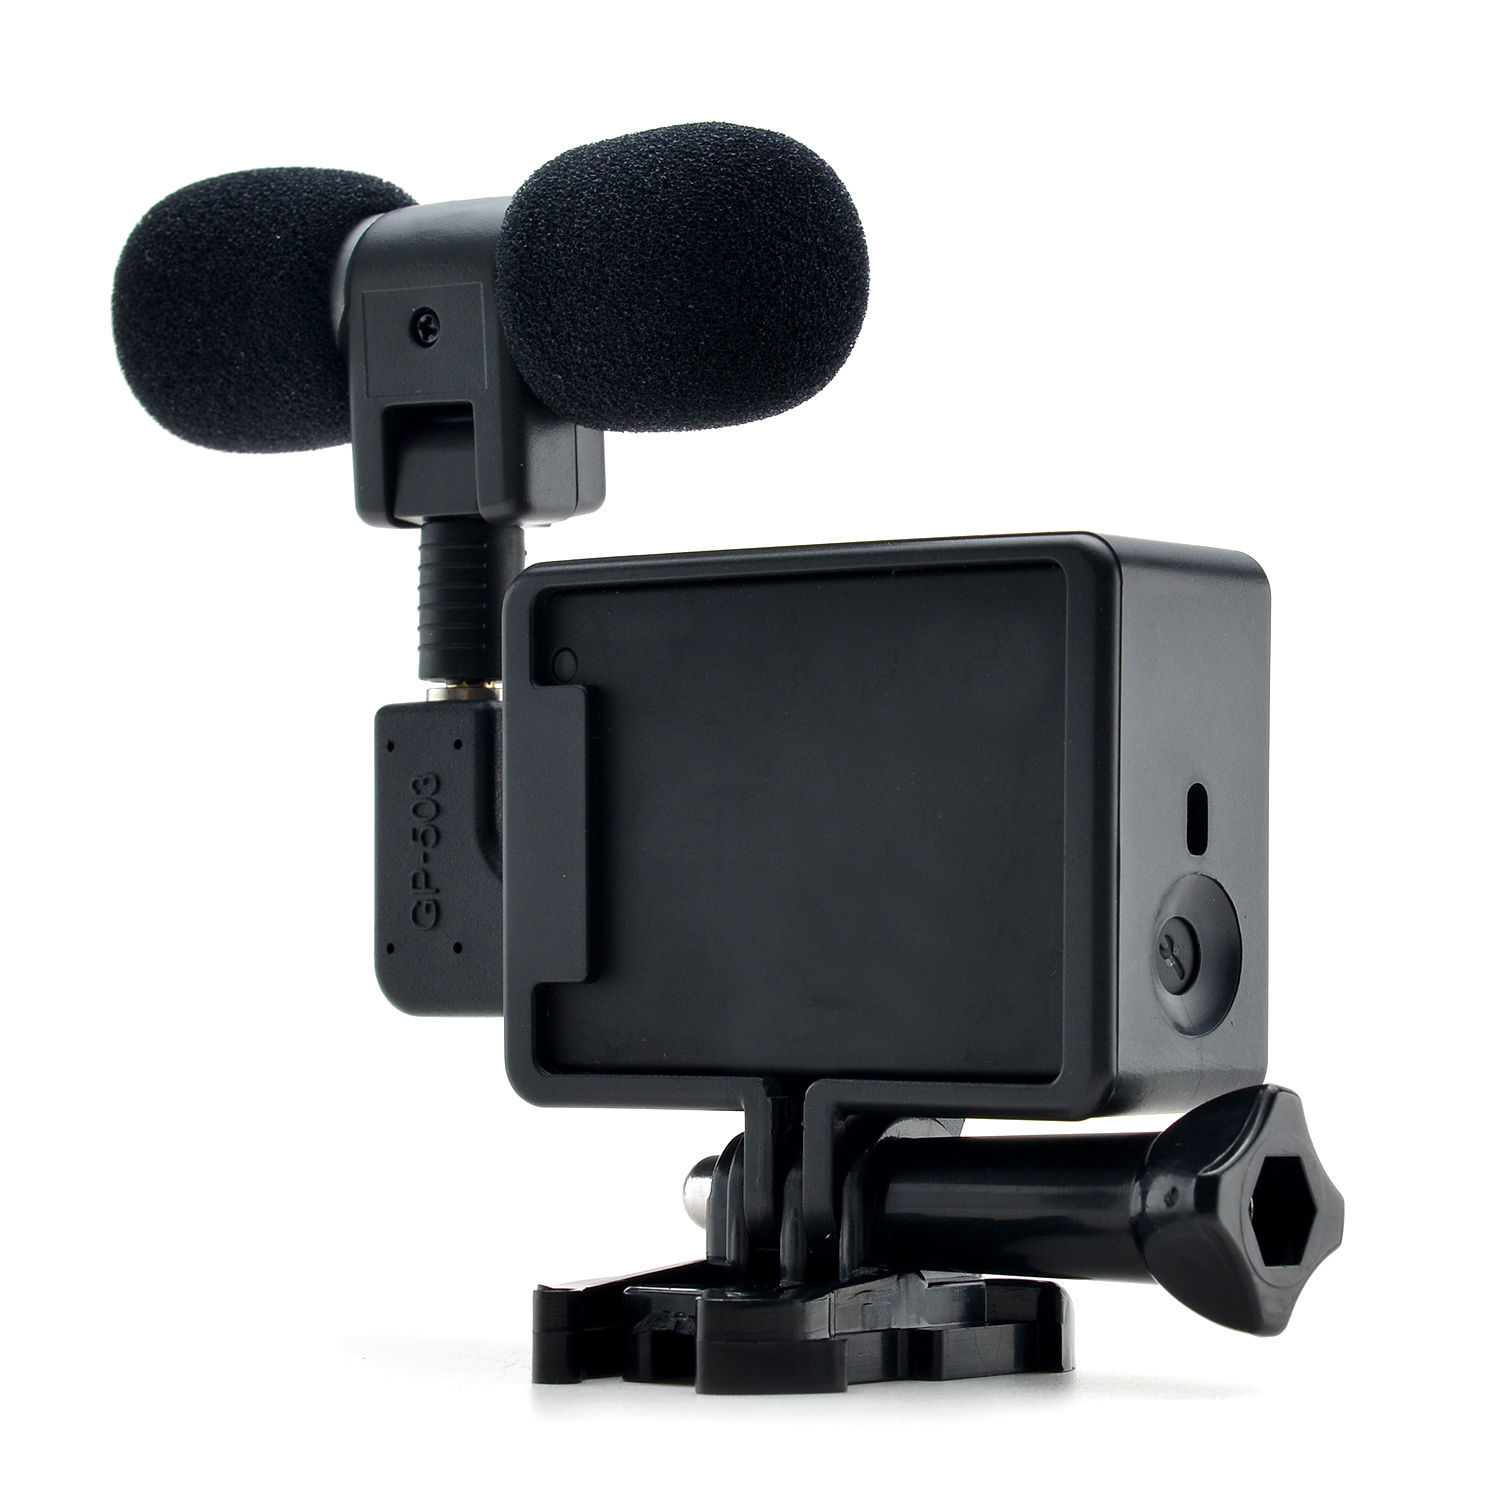 Go Pro Accessories Mini Go Pro Microphone Stereo Noise Reduction Loudspeaker For GoPro 3-3 + 4